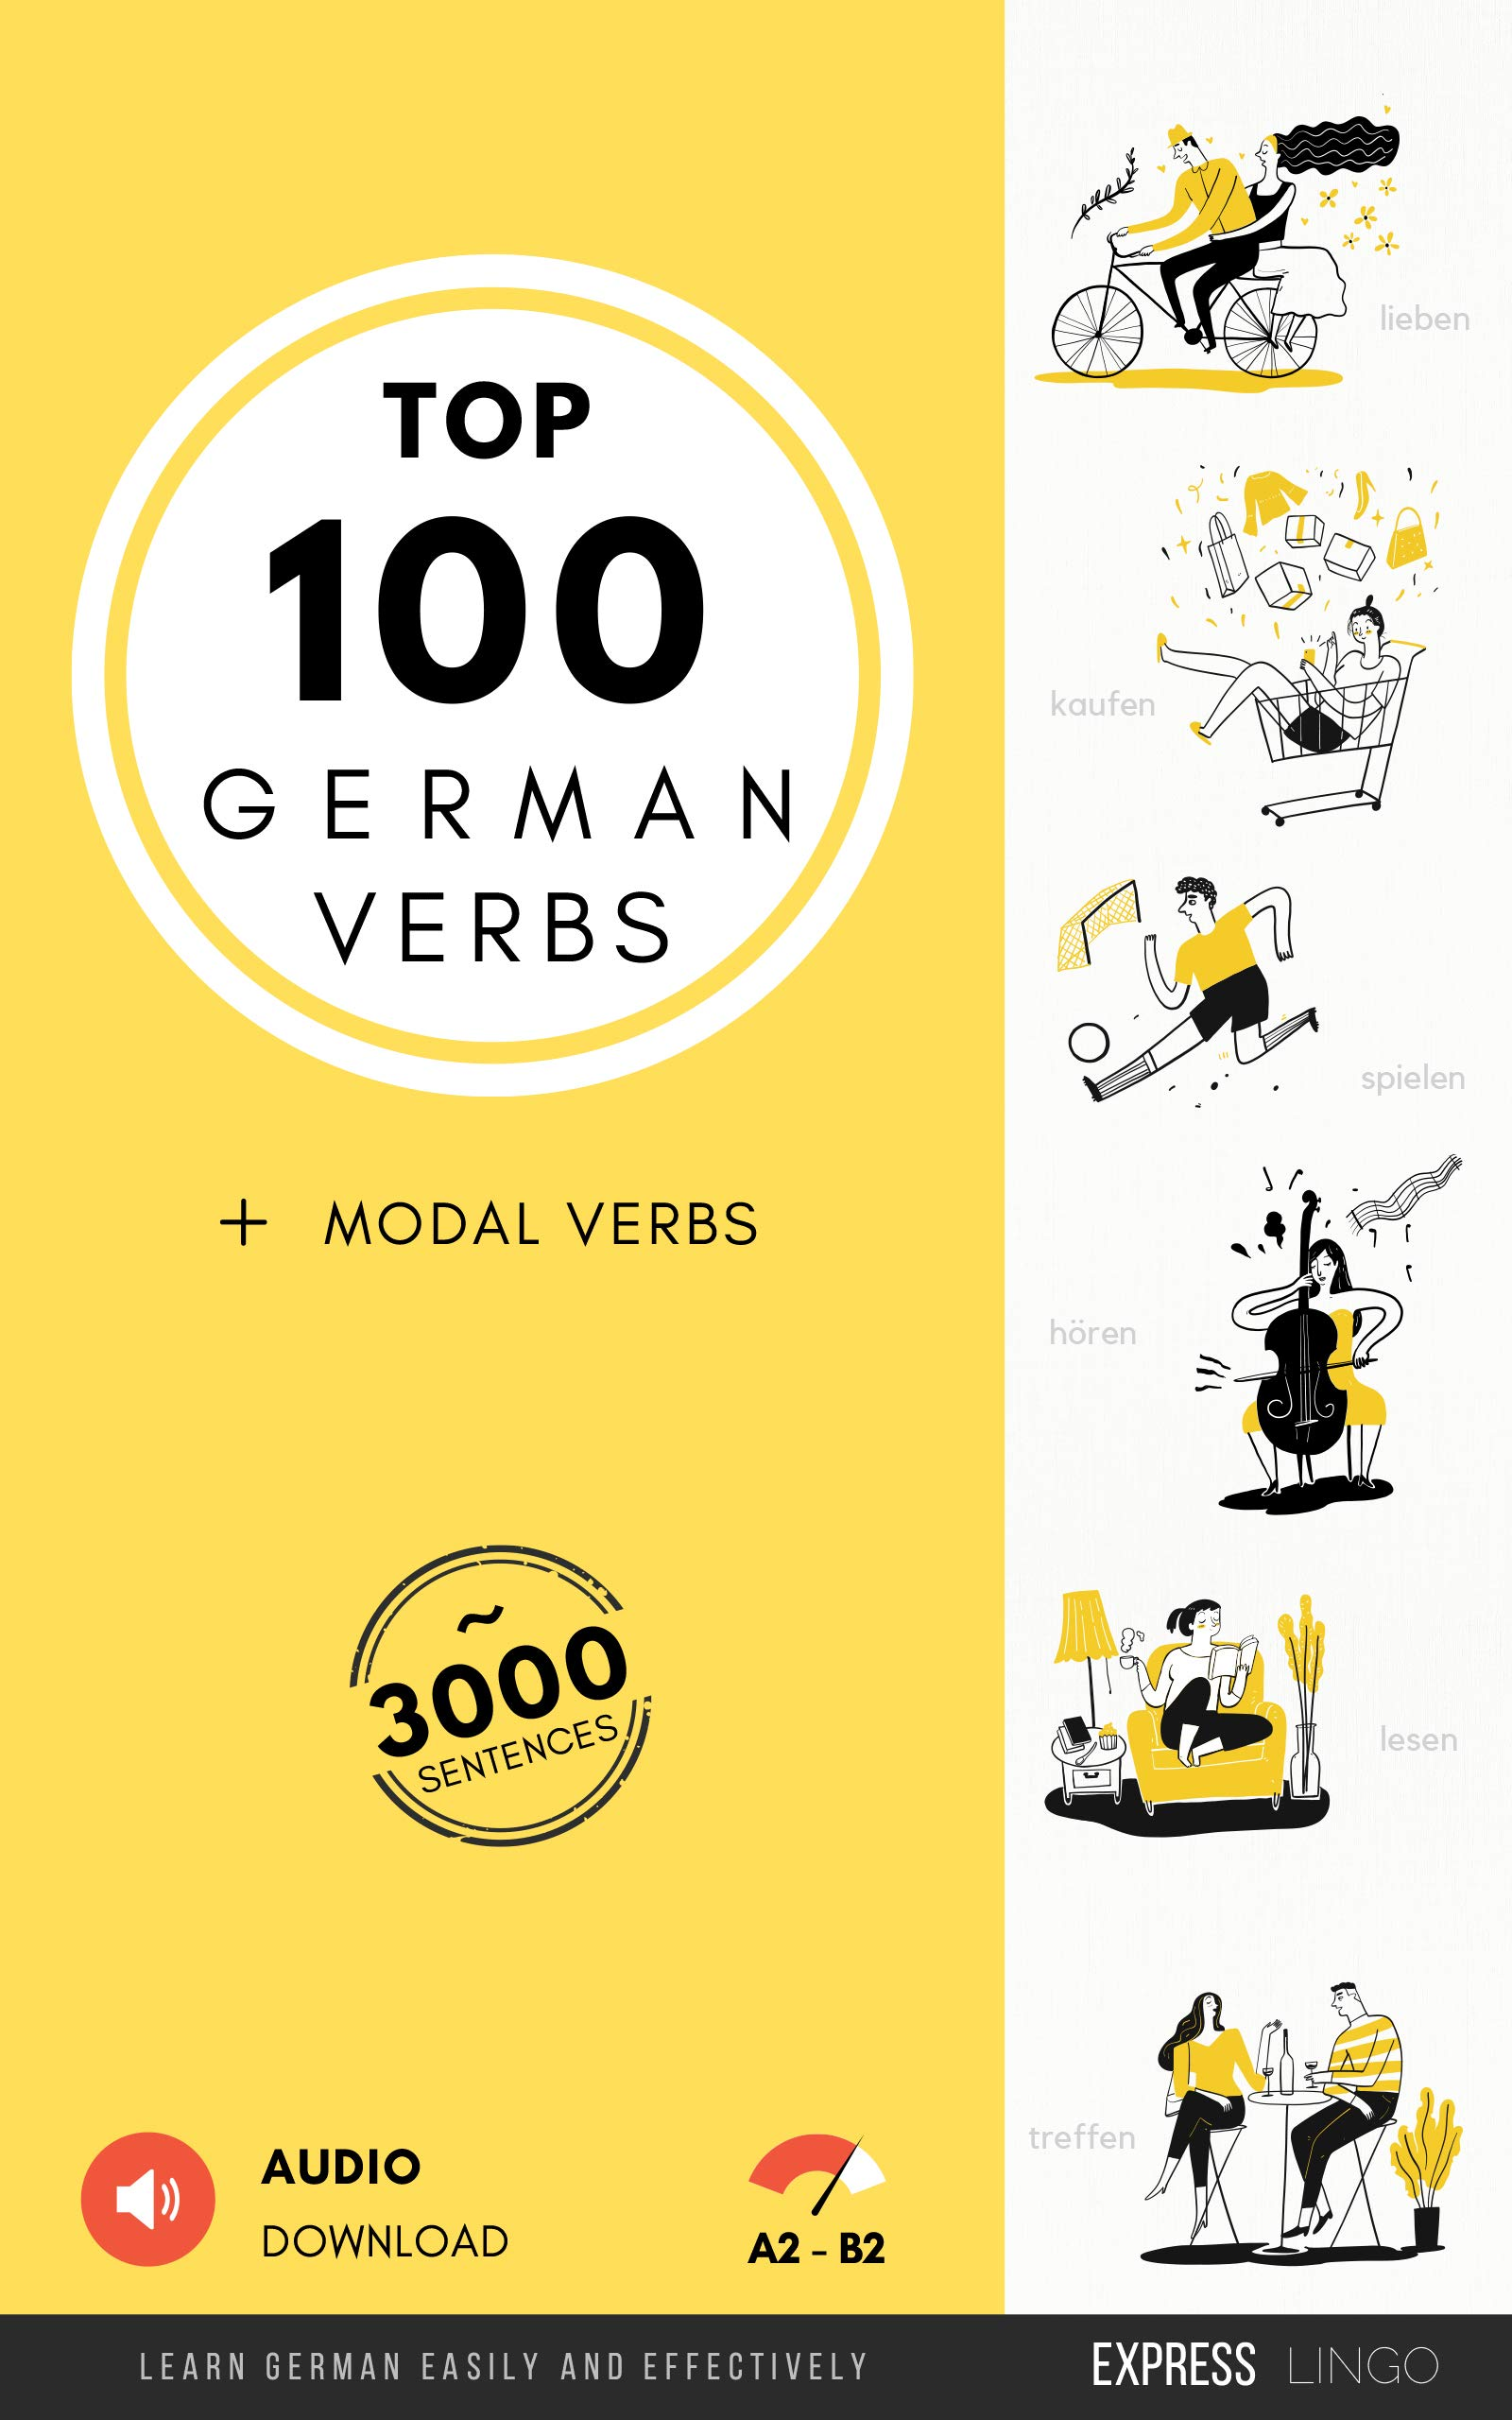 Top 100 German Verbs - Learn German Easily And Effectively: Top 100 Deutsche Verben Und Modalverben - Deutsche Edition (Ge...